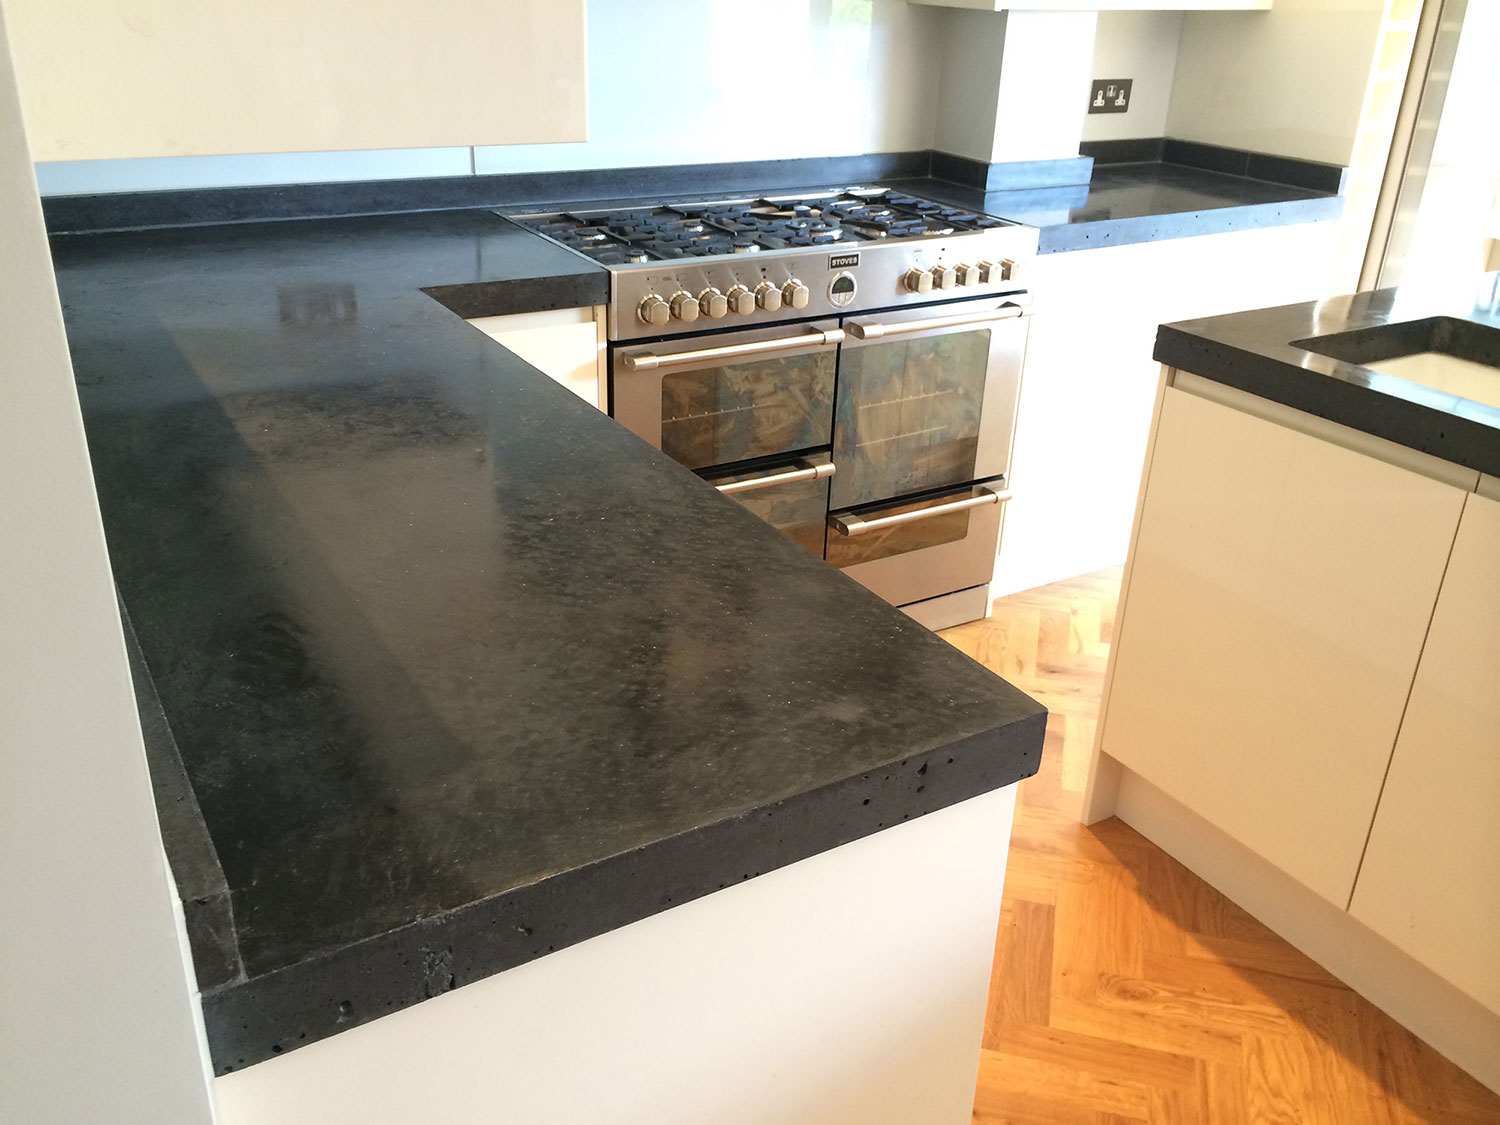 Conscious Forms Forest Hill L Shaped Polished Concrete Kitchen Worktop Large Cut Out For Range